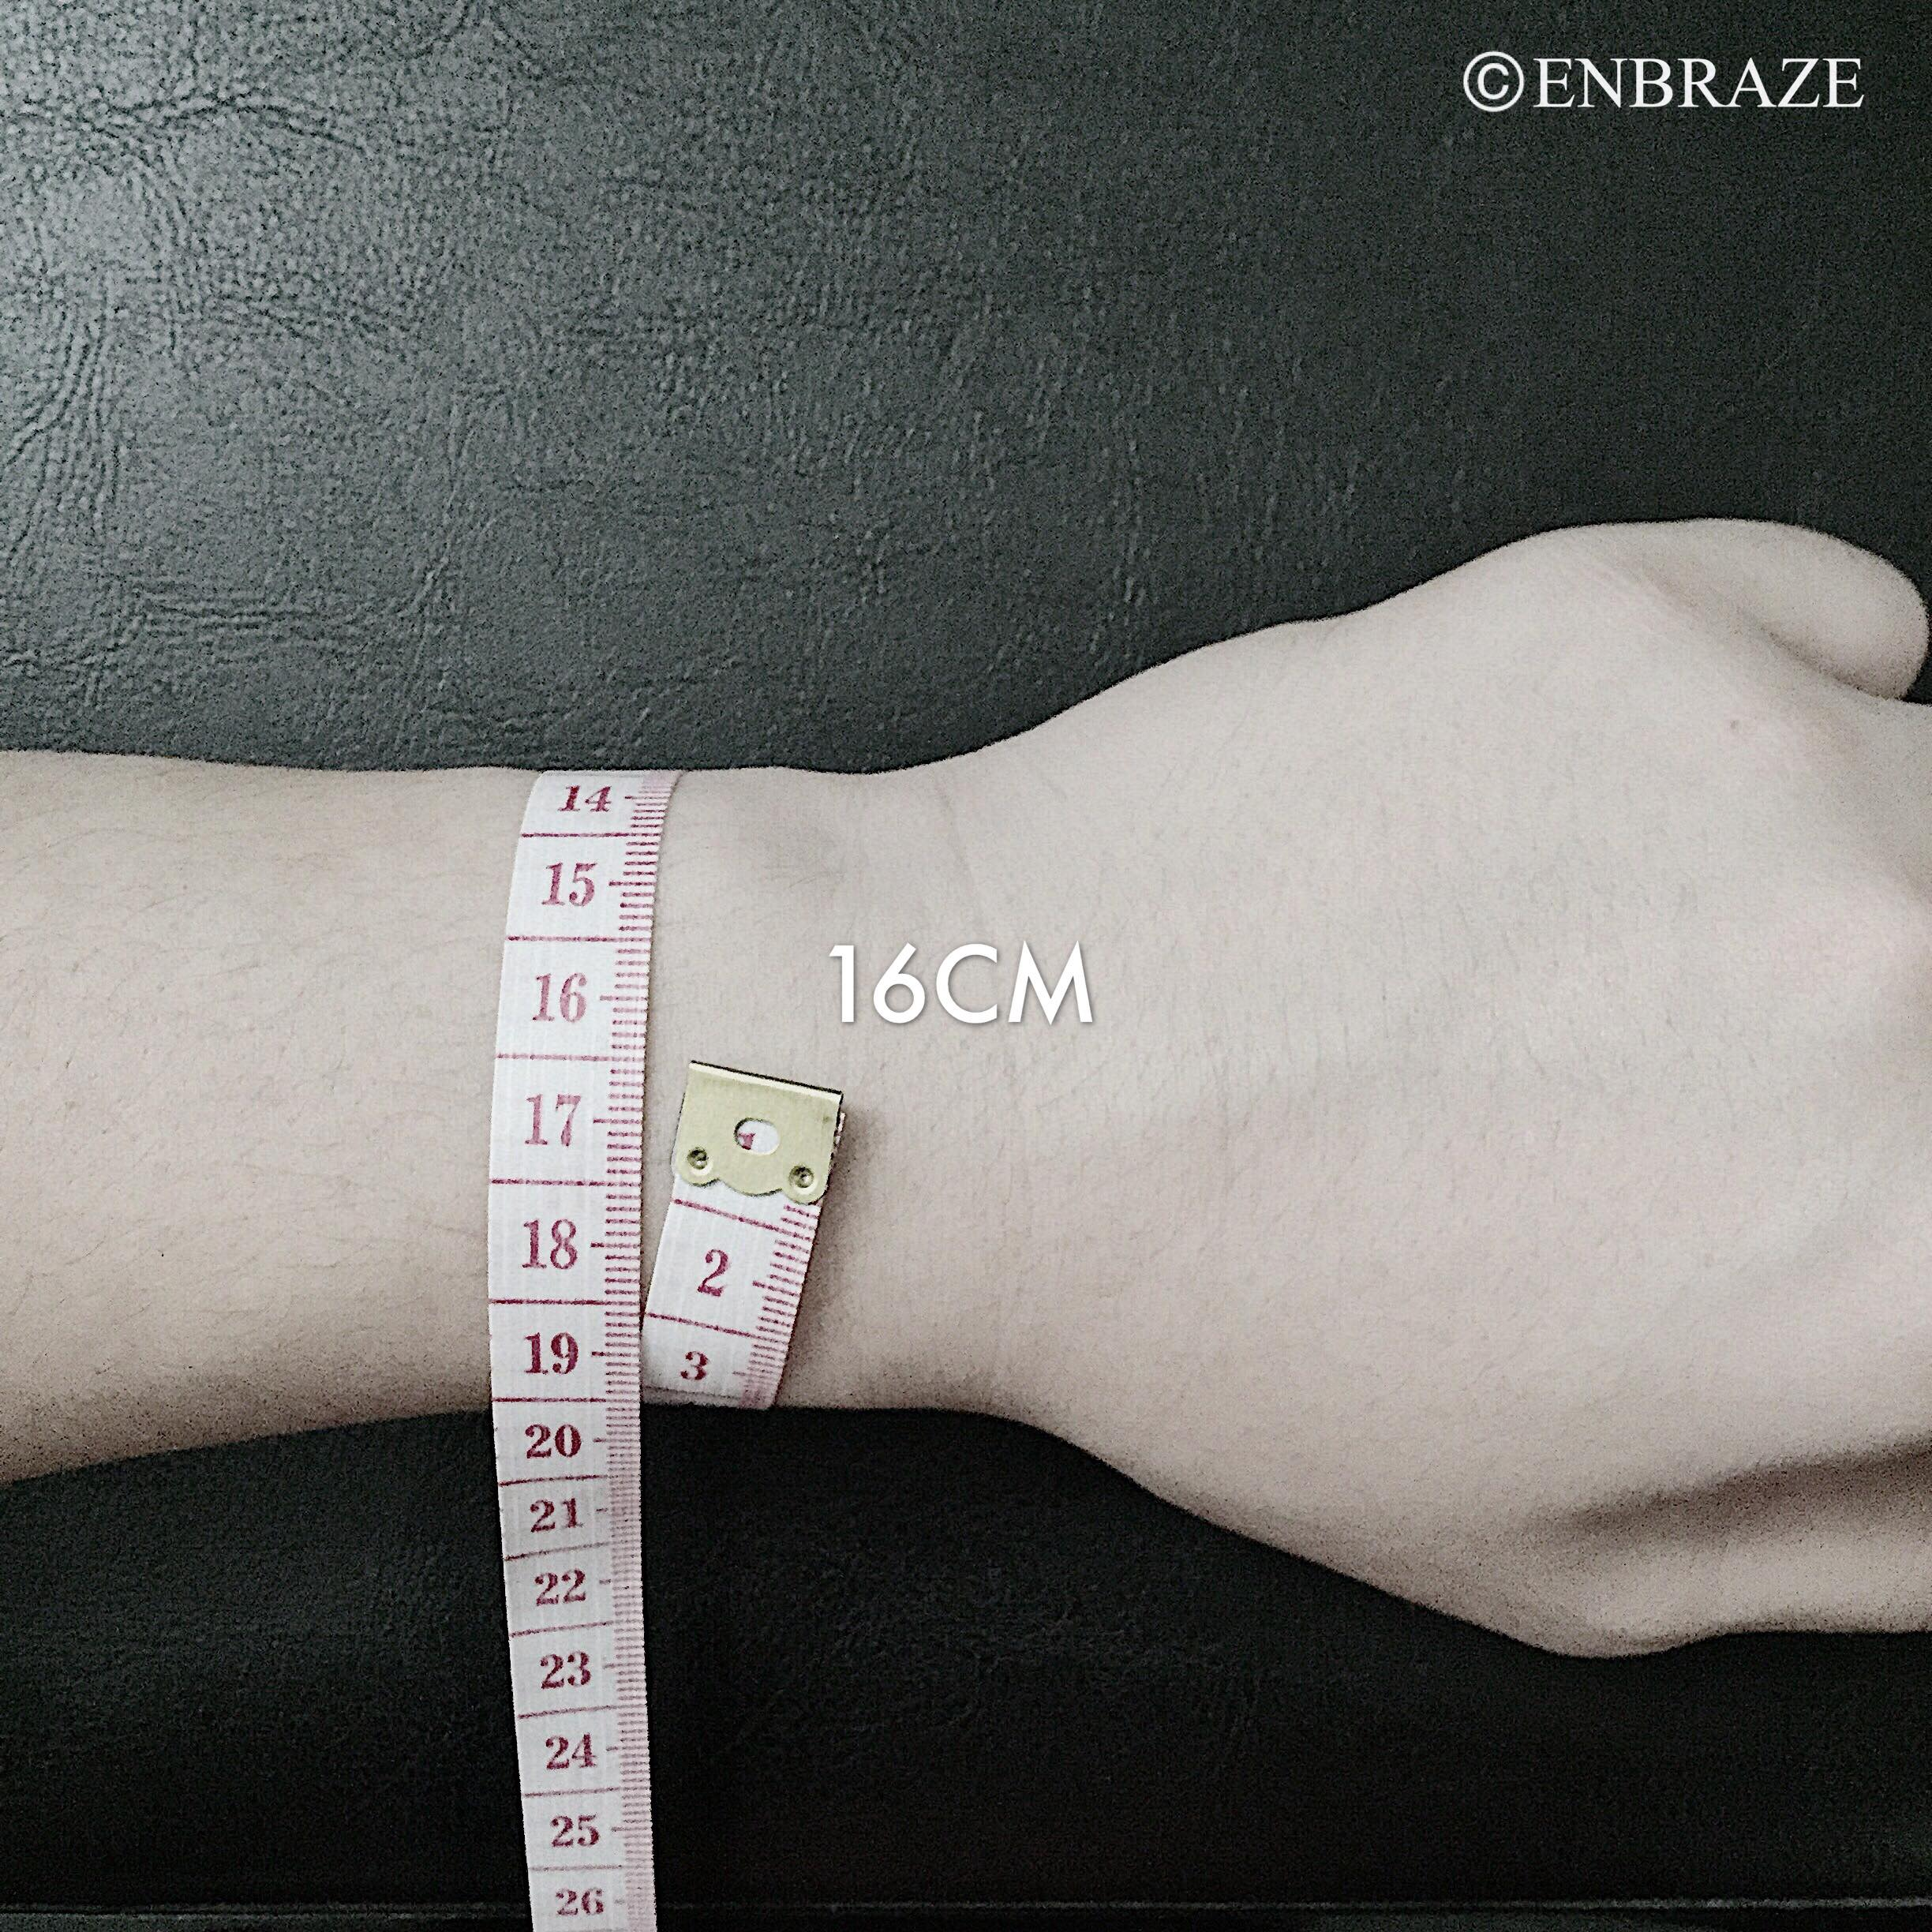 Hand Wrist Measurement.jpg